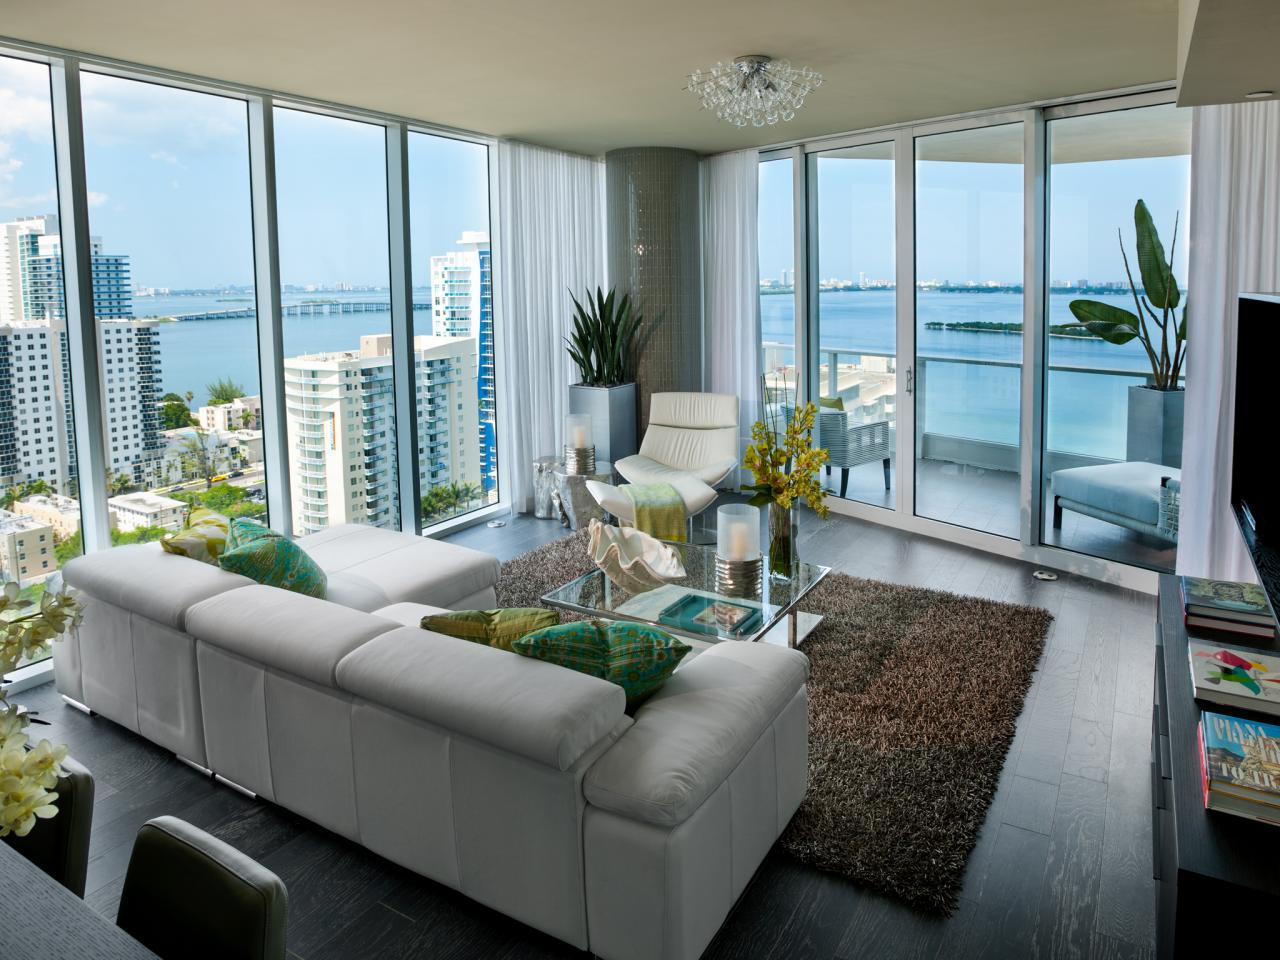 Hgtv urban oasis 2012 living room pictures hgtv urban oasis 2012 hgtv - Designer living room ideas ...